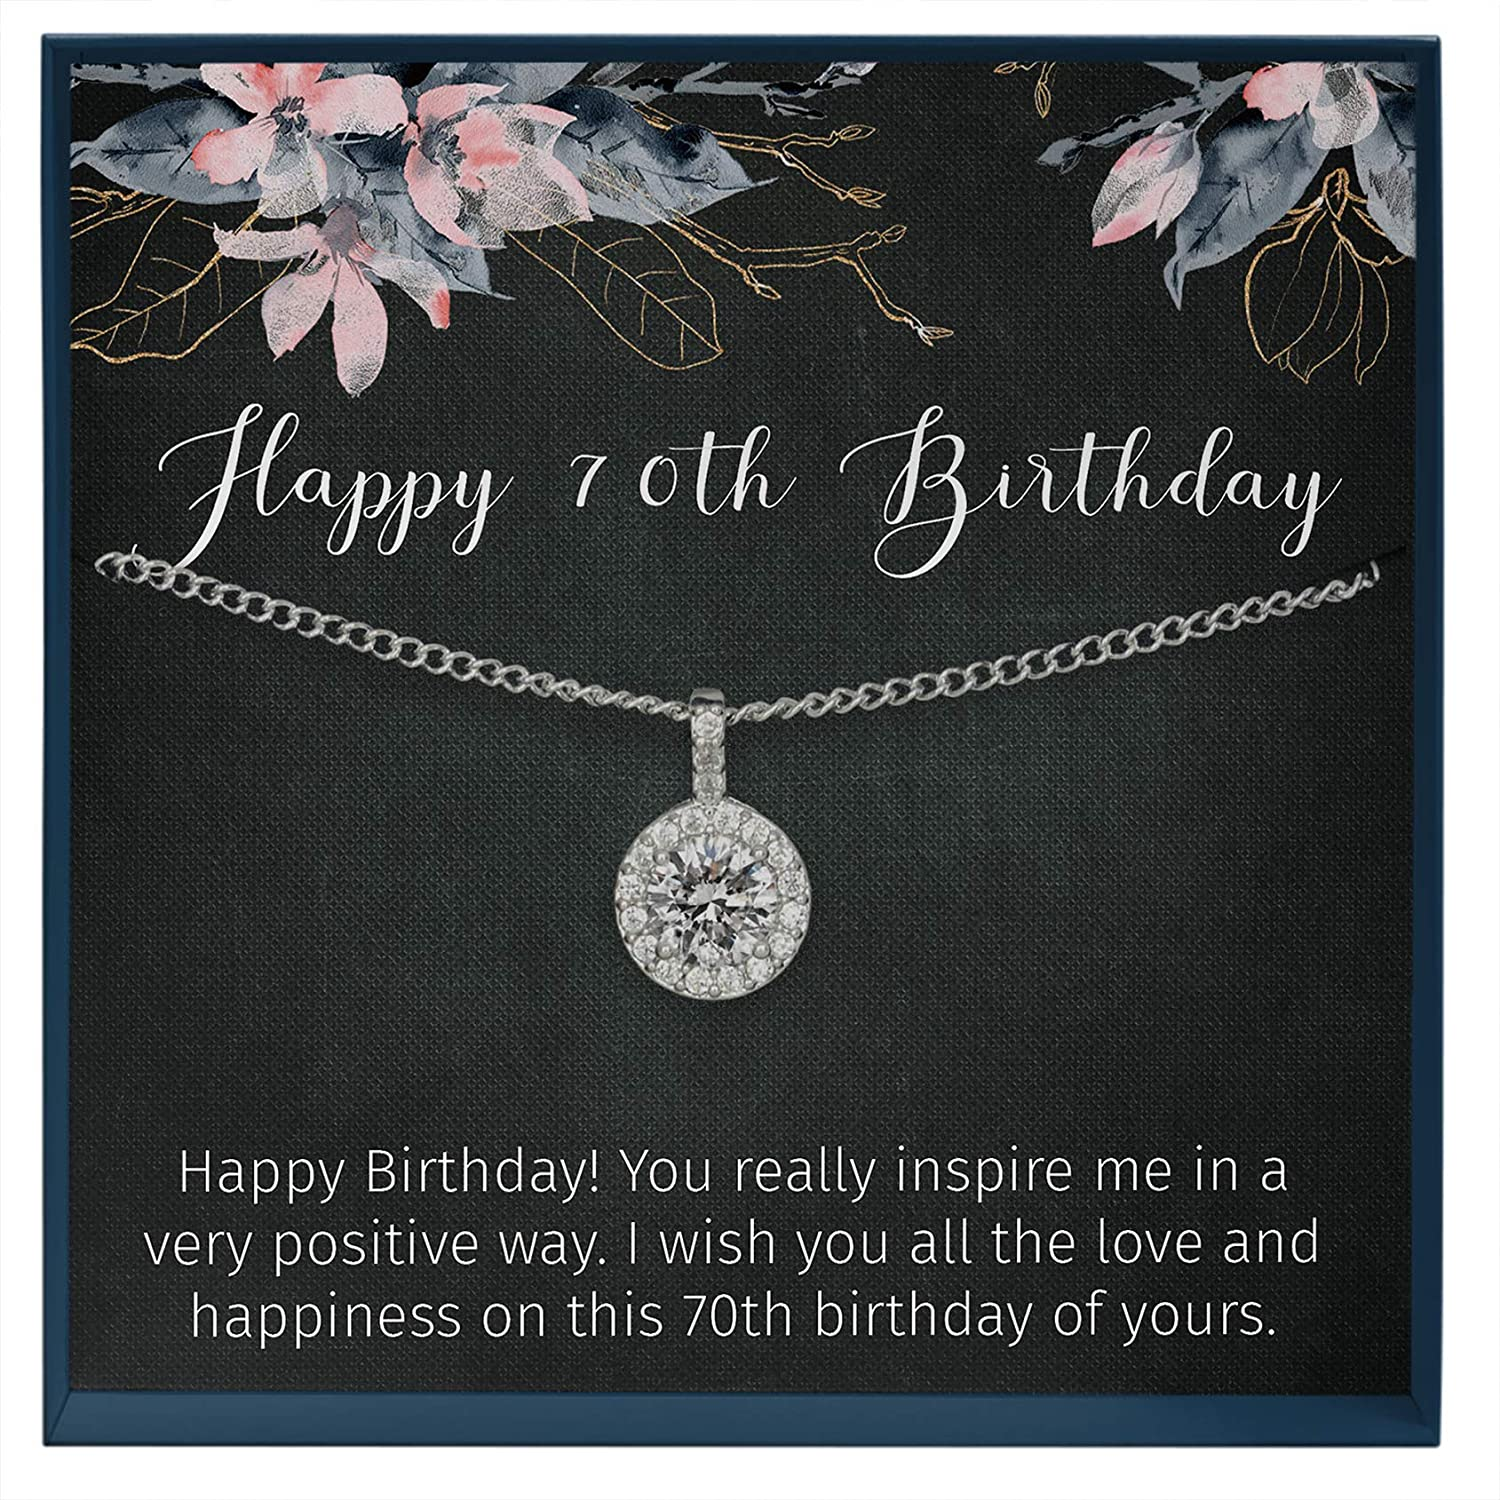 Muse Infinite 70th Birthday Gifts for Women Gift Ideas Gift for 70 Year Old Woman, Seventy Birthday Gift for Sister, 70th Gift for Mom